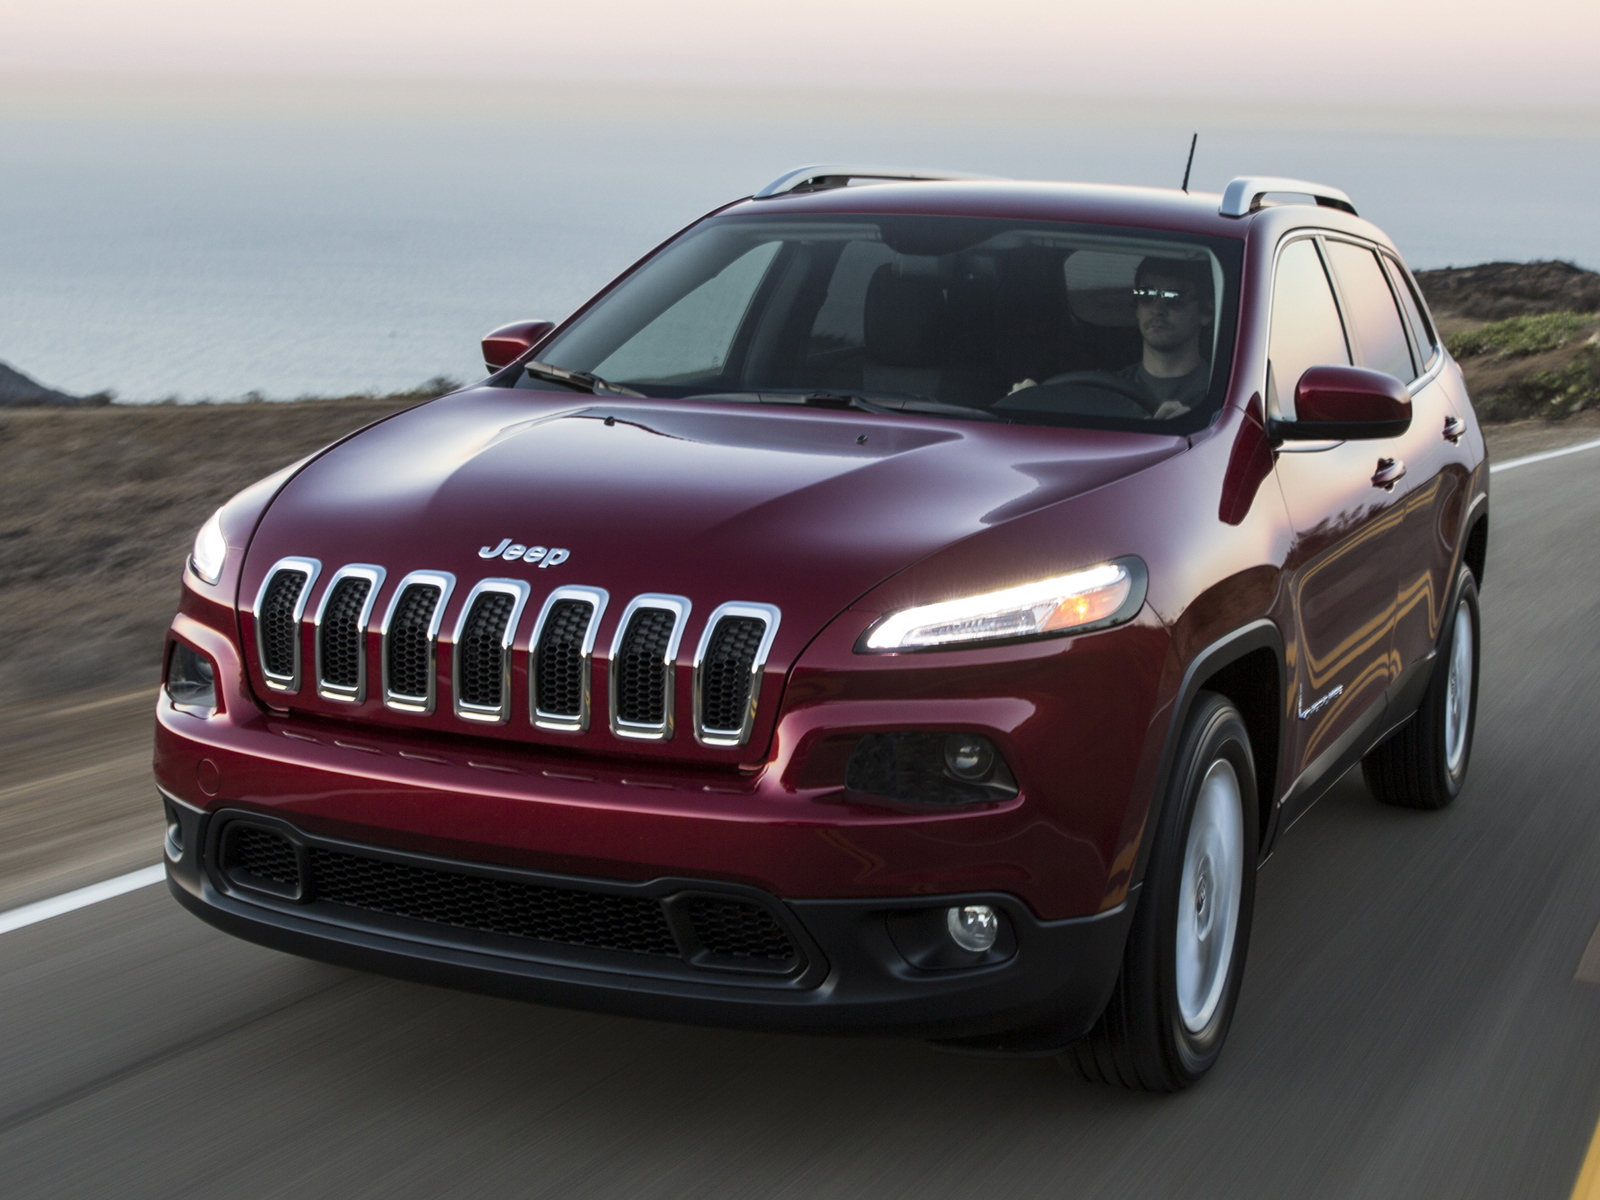 2014 jeep cherokee latitude kl h wallpaper 1600x1200 164943 wallpaperup. Black Bedroom Furniture Sets. Home Design Ideas